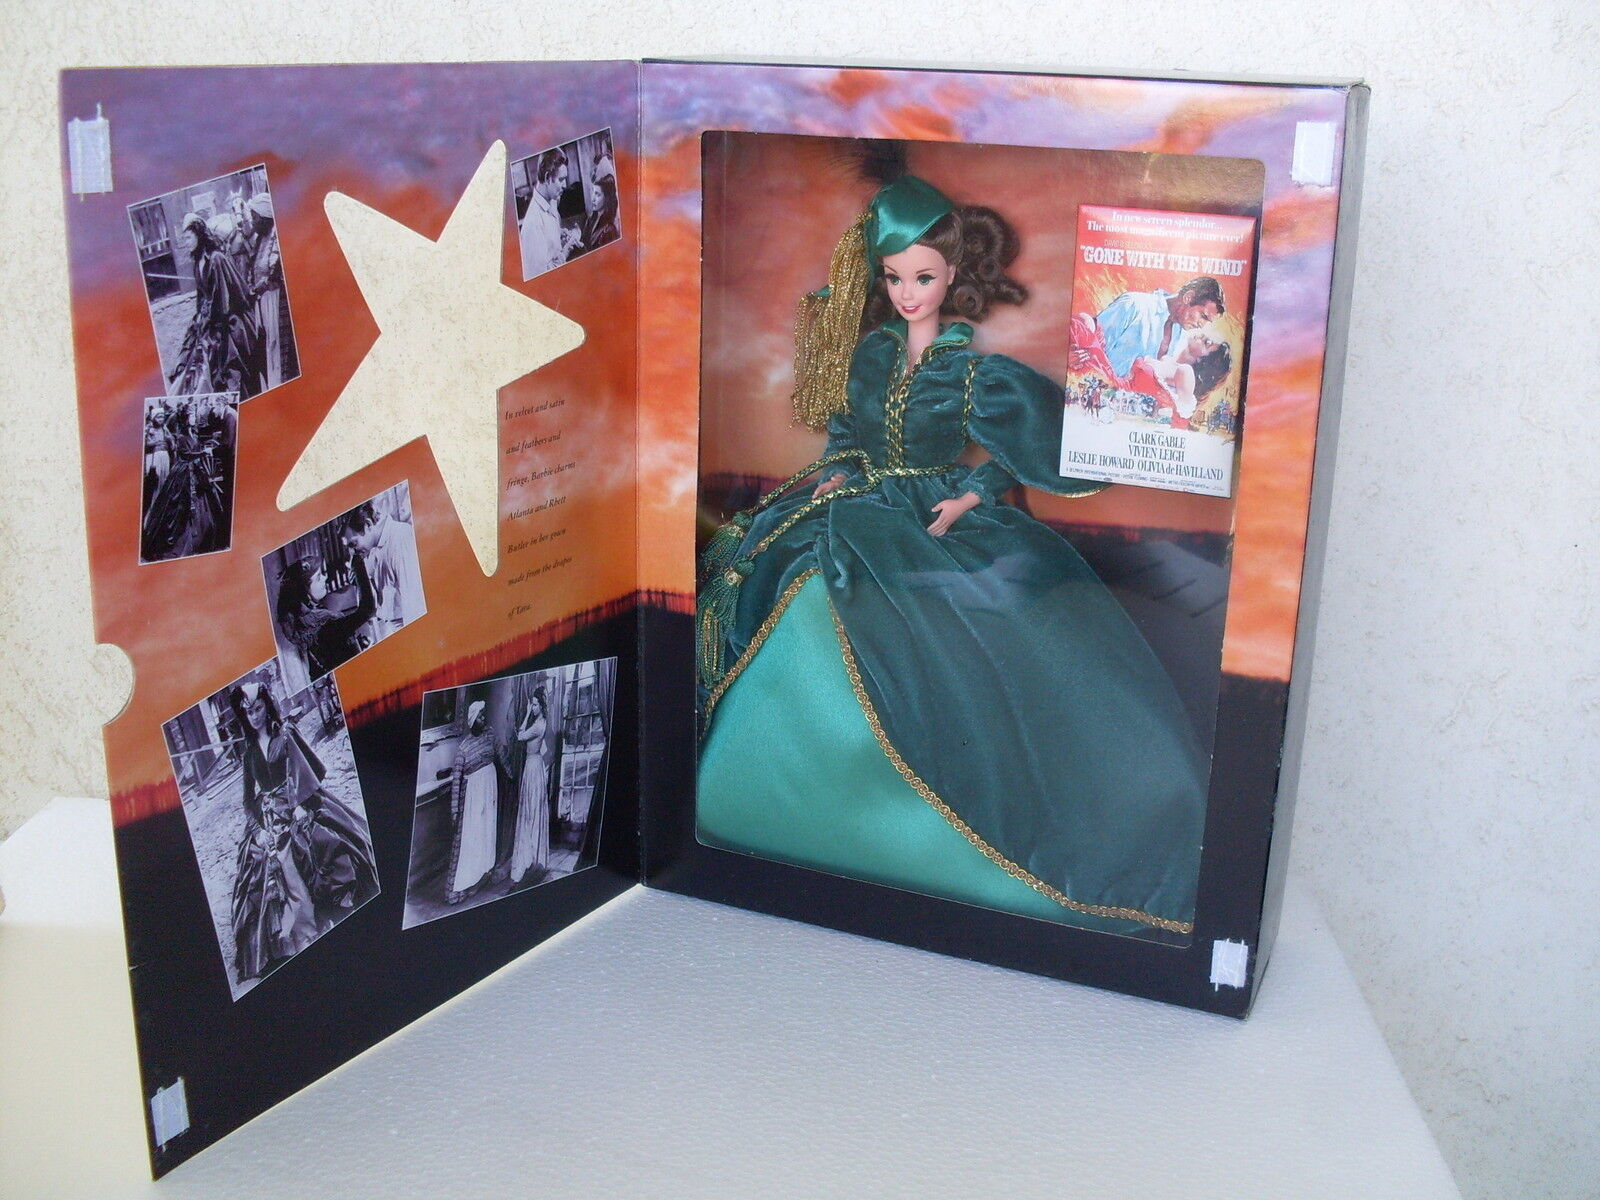 Barbie scarlett o'hara gone with the wind wind wind via col vento legends 1994 NRFB 12045 00e1bf